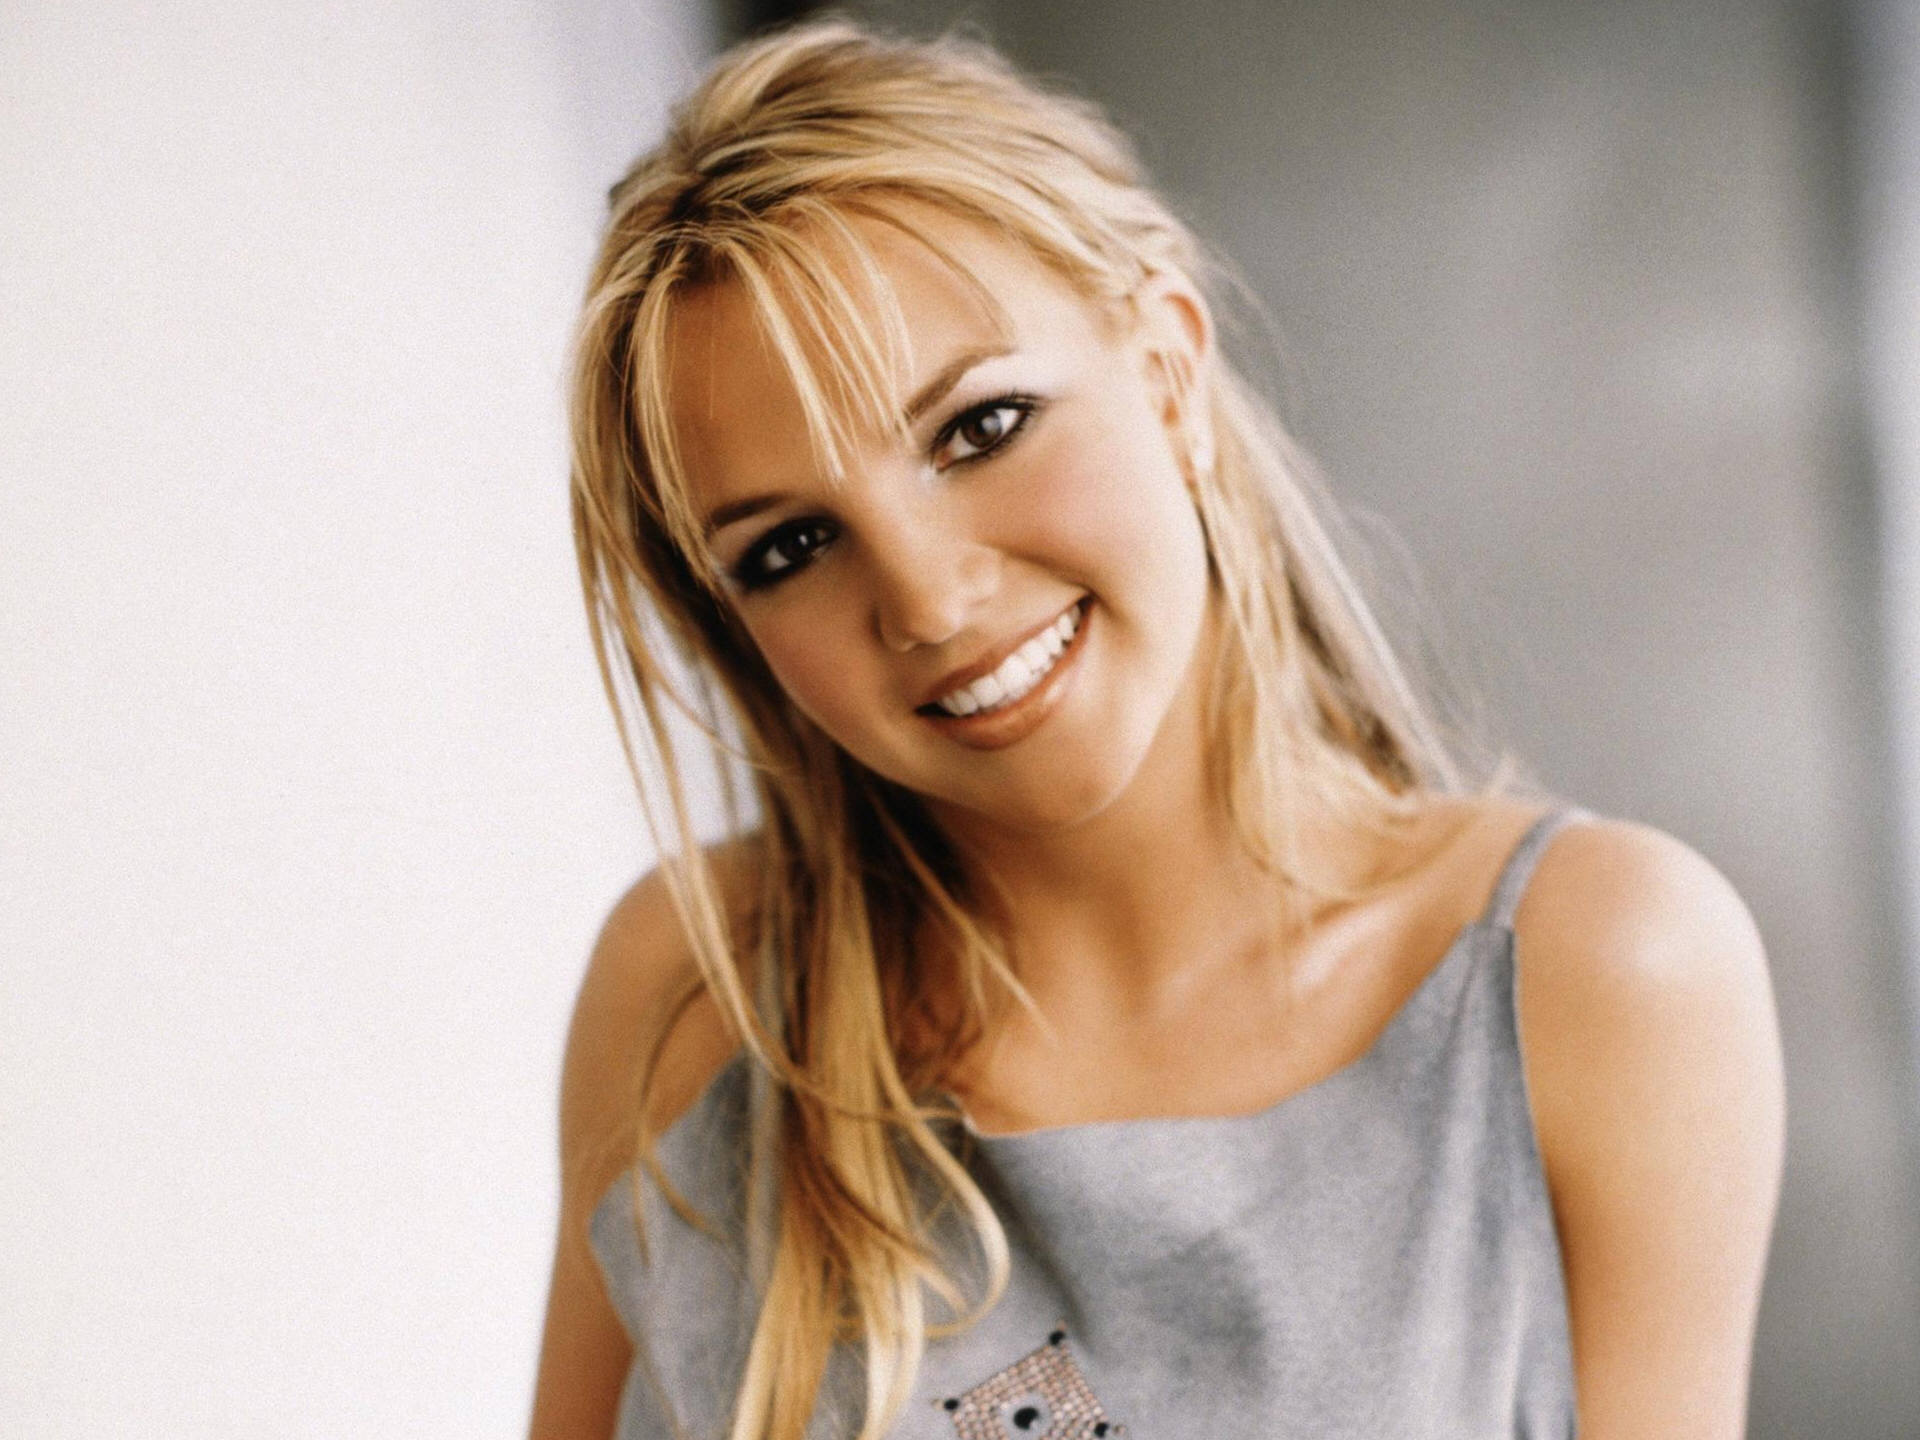 Britney Spears For Desktop Background 13 HD Wallpapers